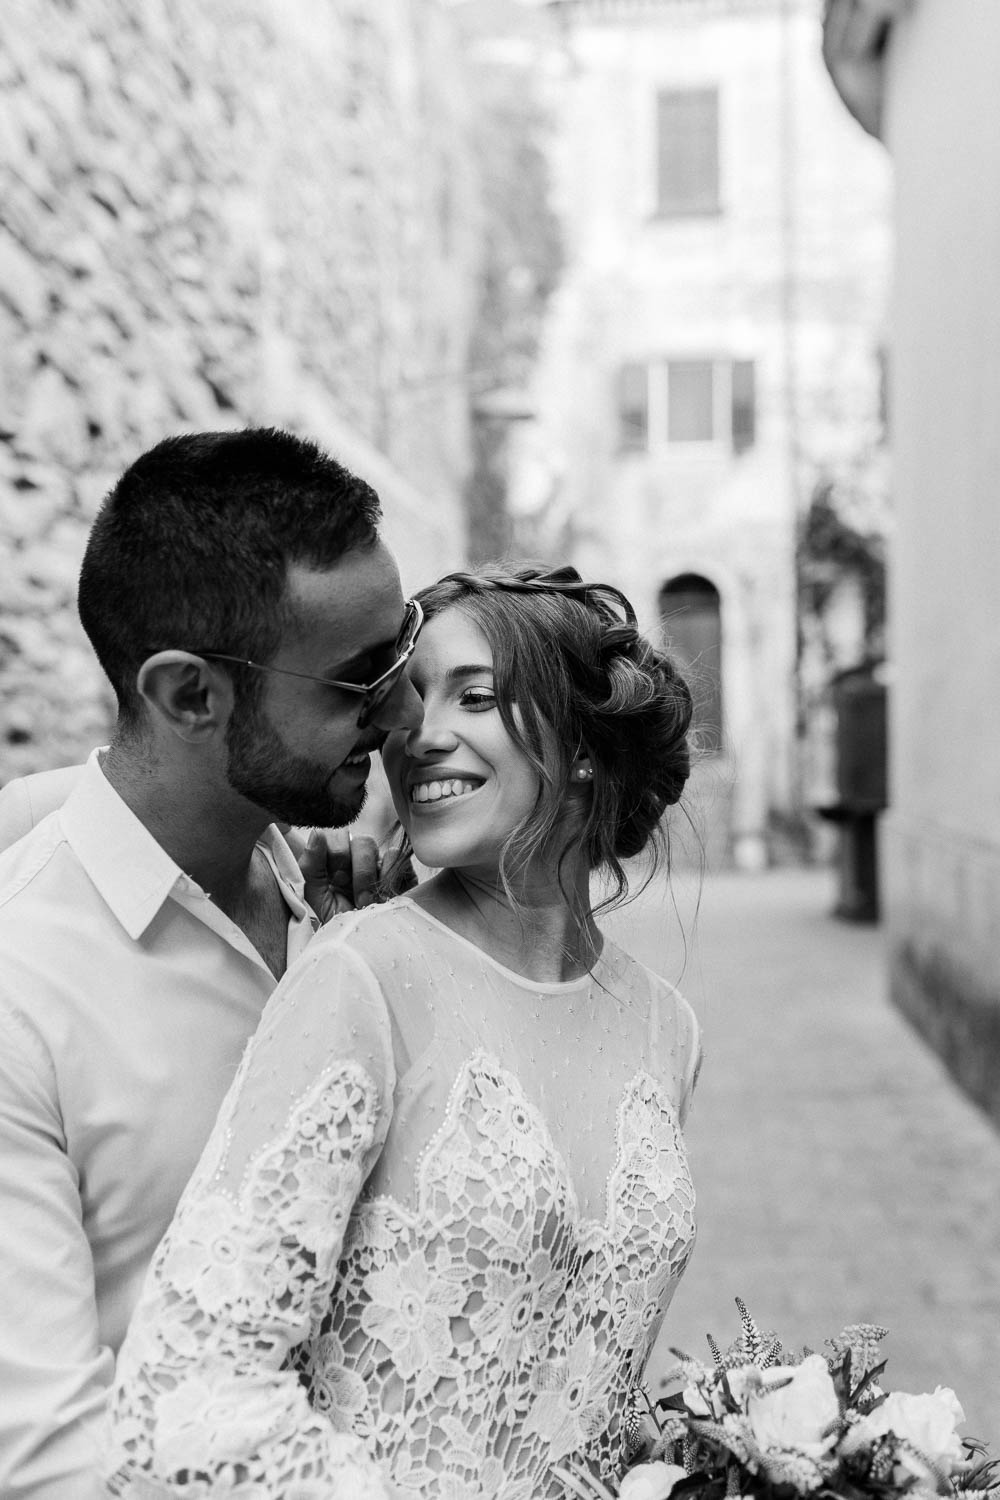 castellabate italy wedding photography-20.jpg